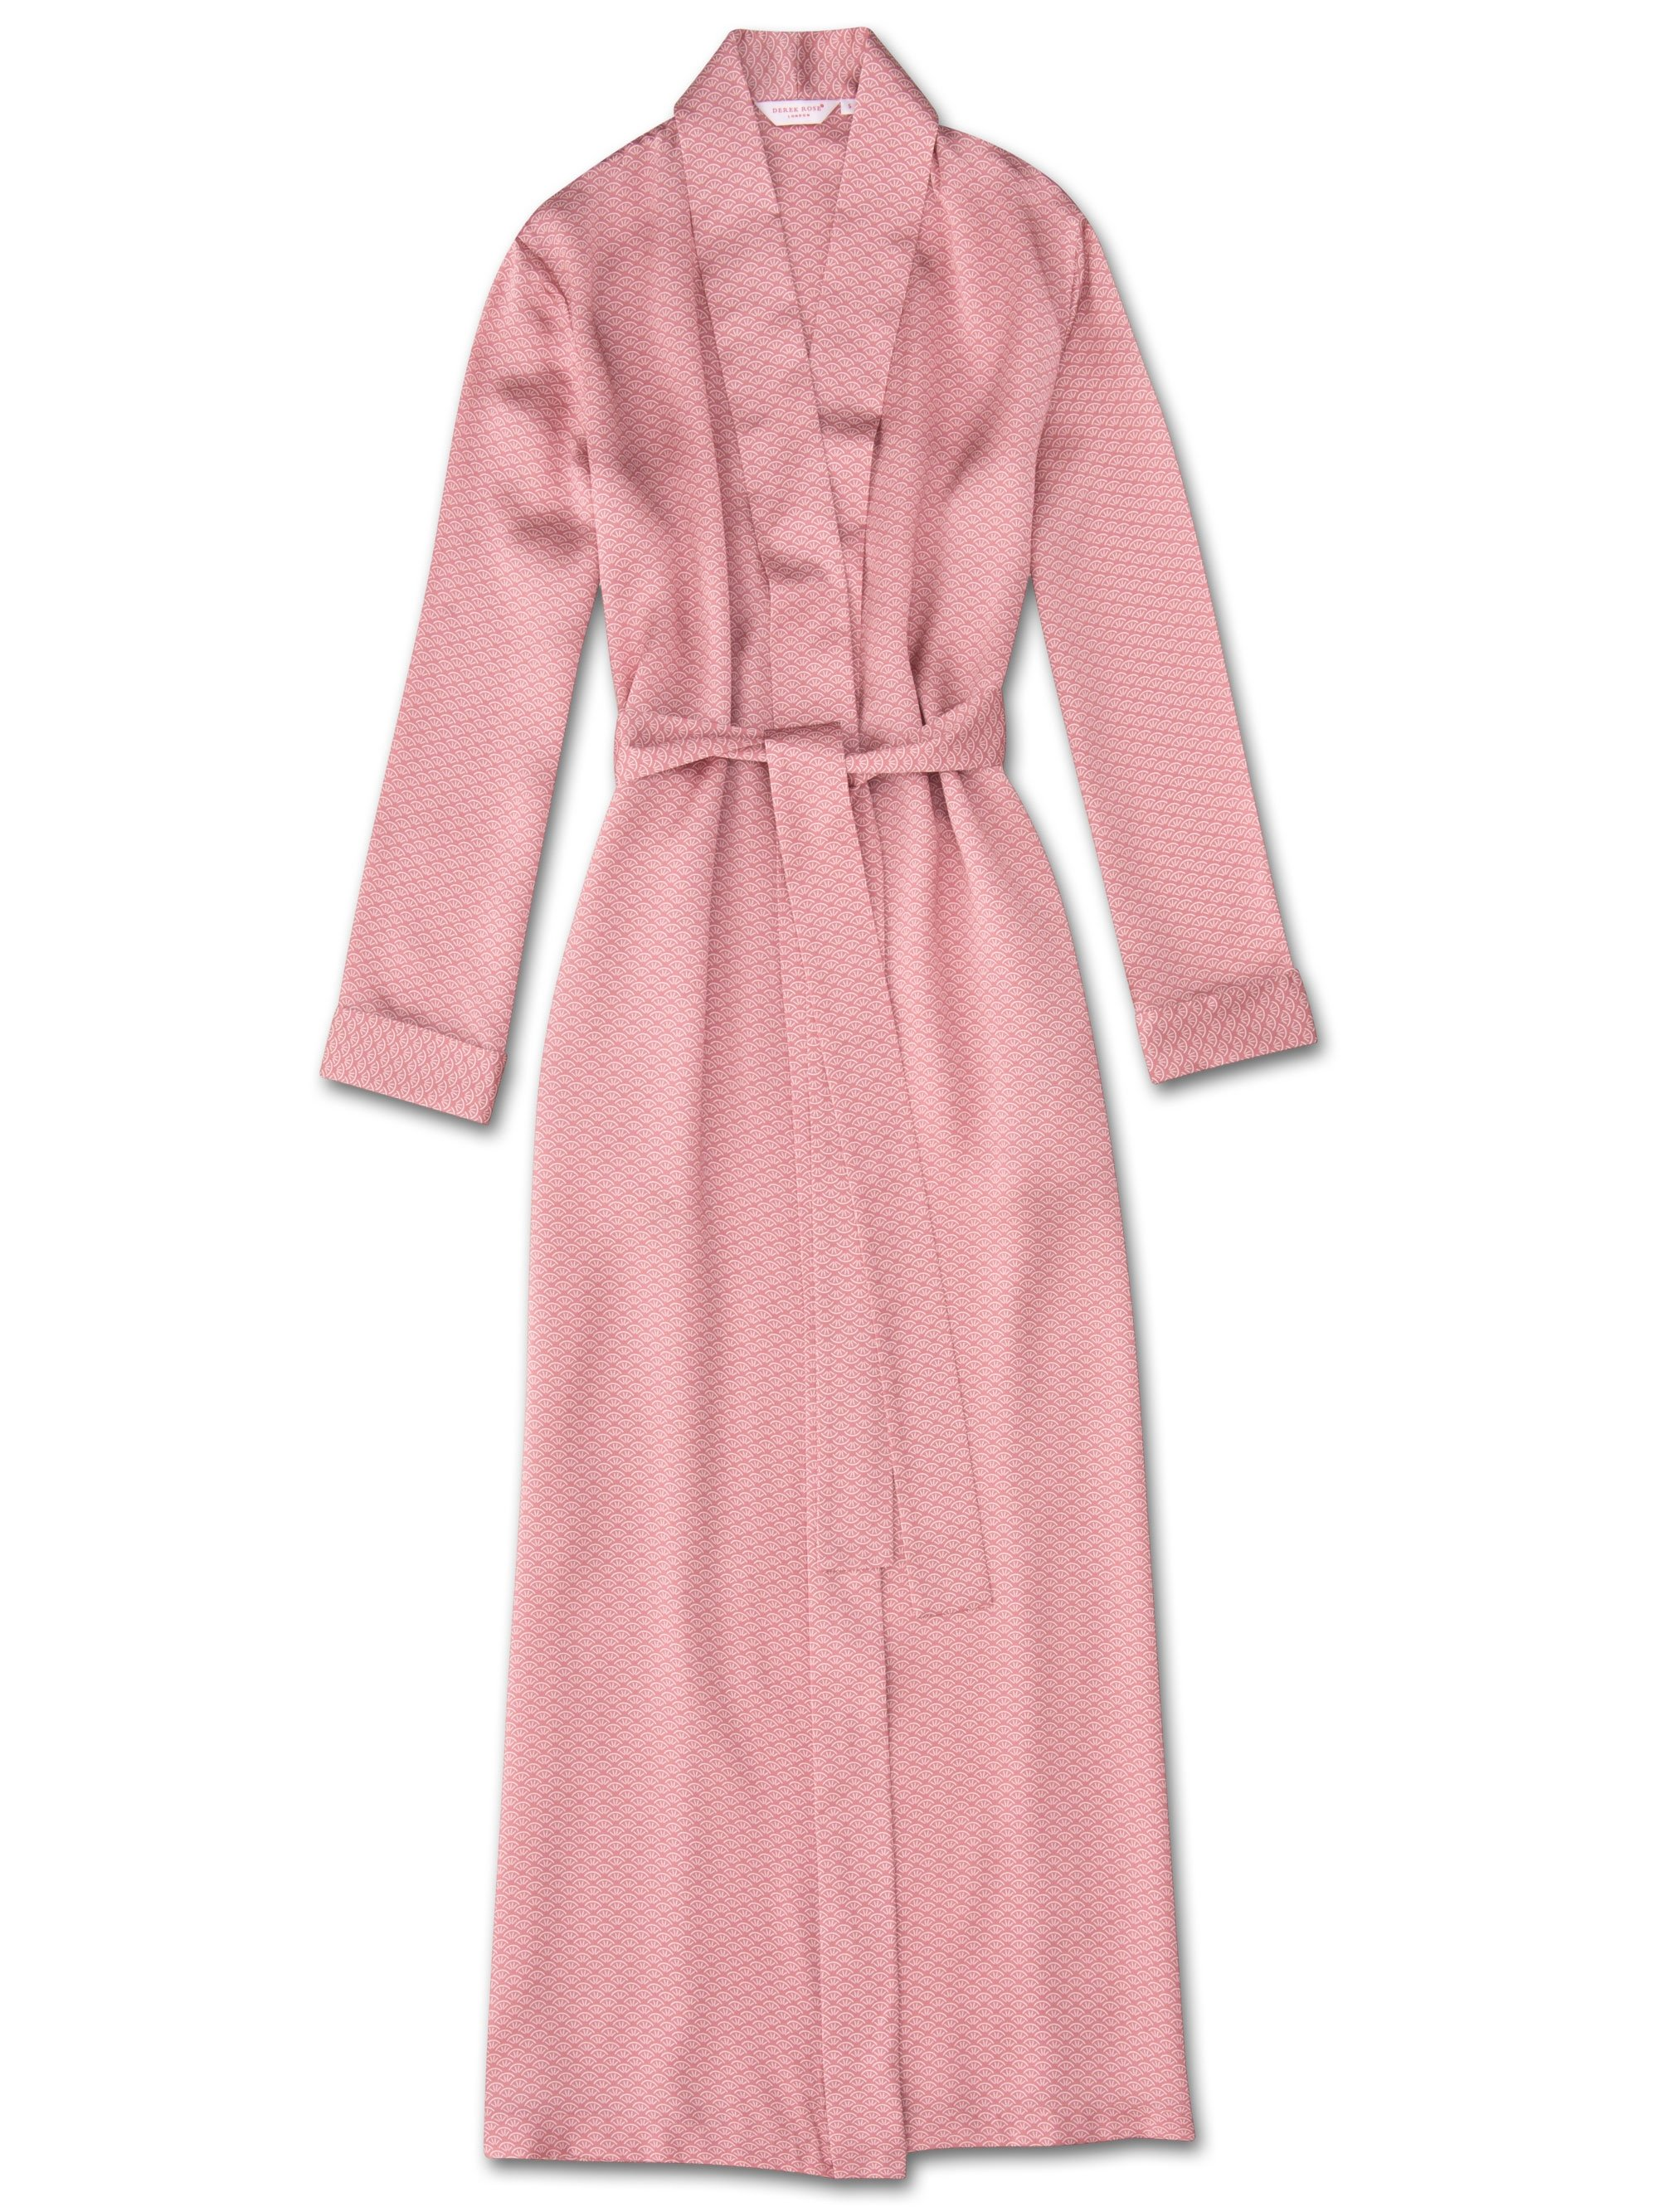 Women's Full Length Dressing Gown Brindisi 26 Pure Silk Satin Pink